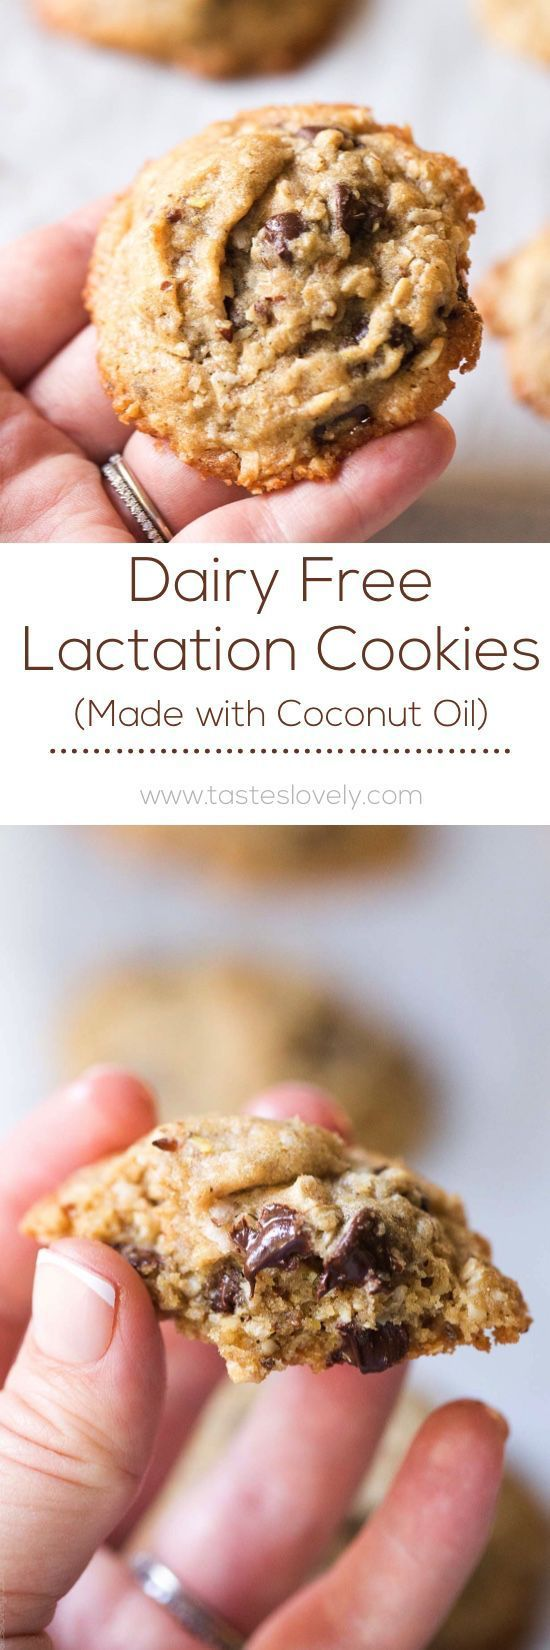 Dairy Free Lactation Cookies made with Coconut Oil. Delicious, and increases your milk supply when breastfeeding!